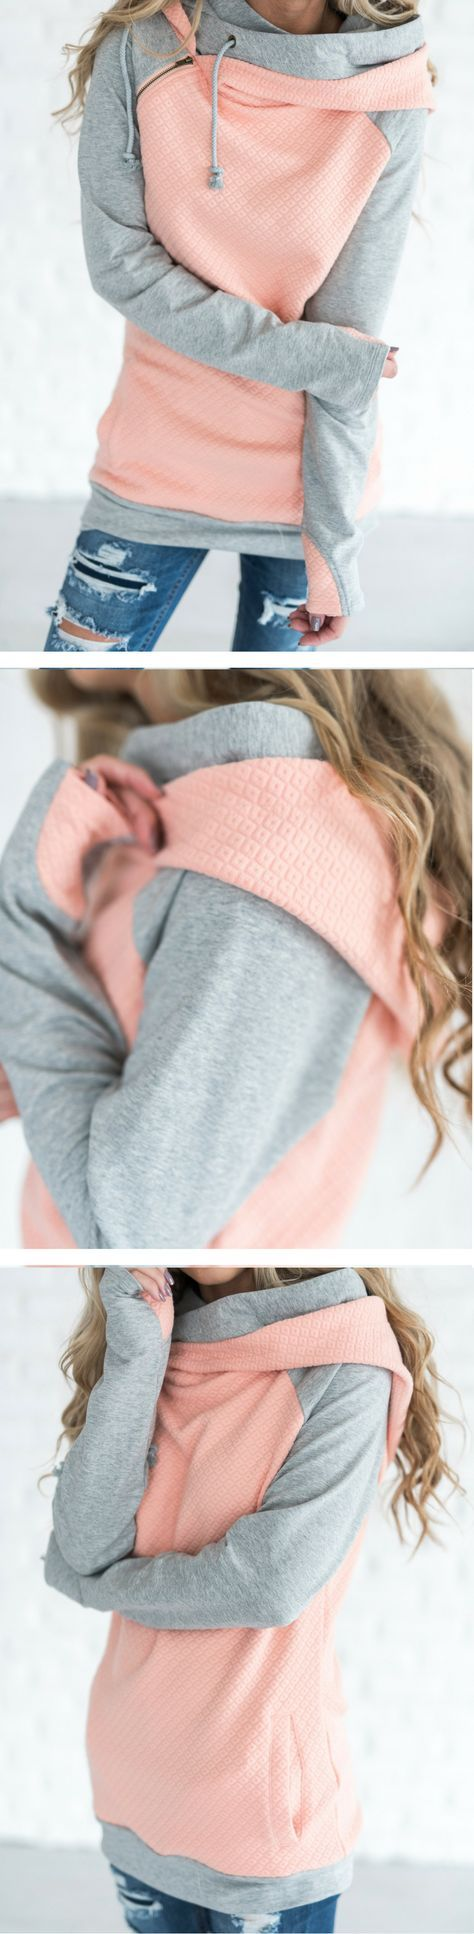 all sales June 6th are F I N A L S A L E. Our most popular piece and for good reason! This hoodie is the cutest way to stay comfortable and cozy while remaining dang cute! It's zipper detail adds a fu